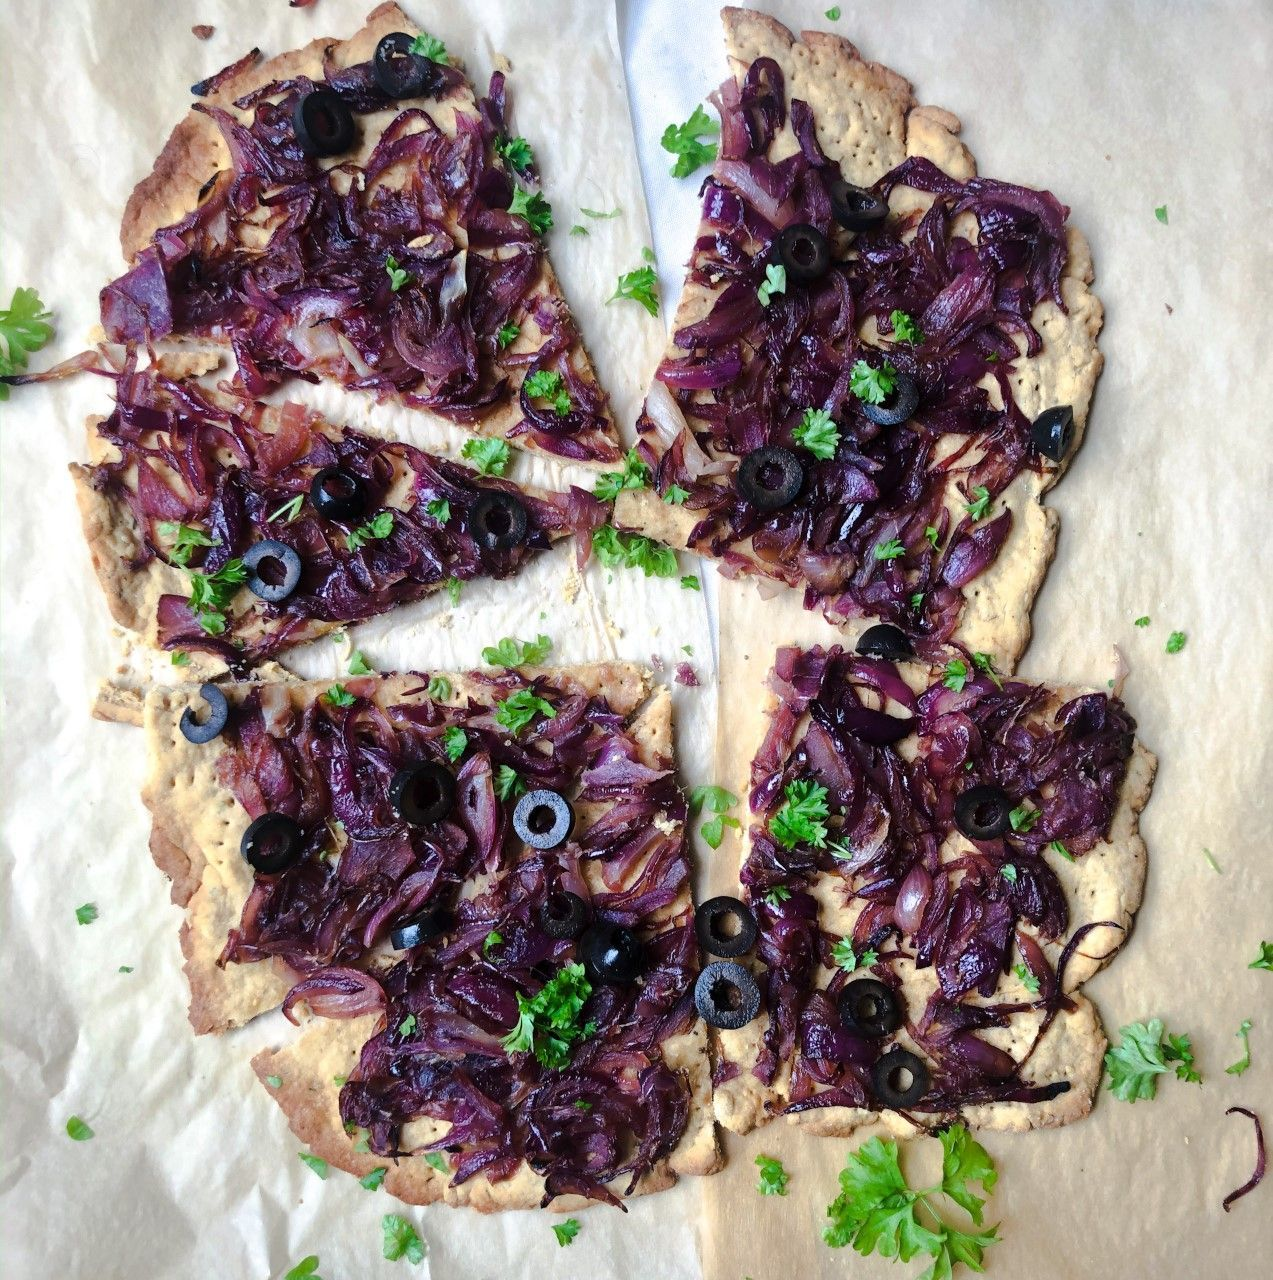 Vegan honeypot flatbread